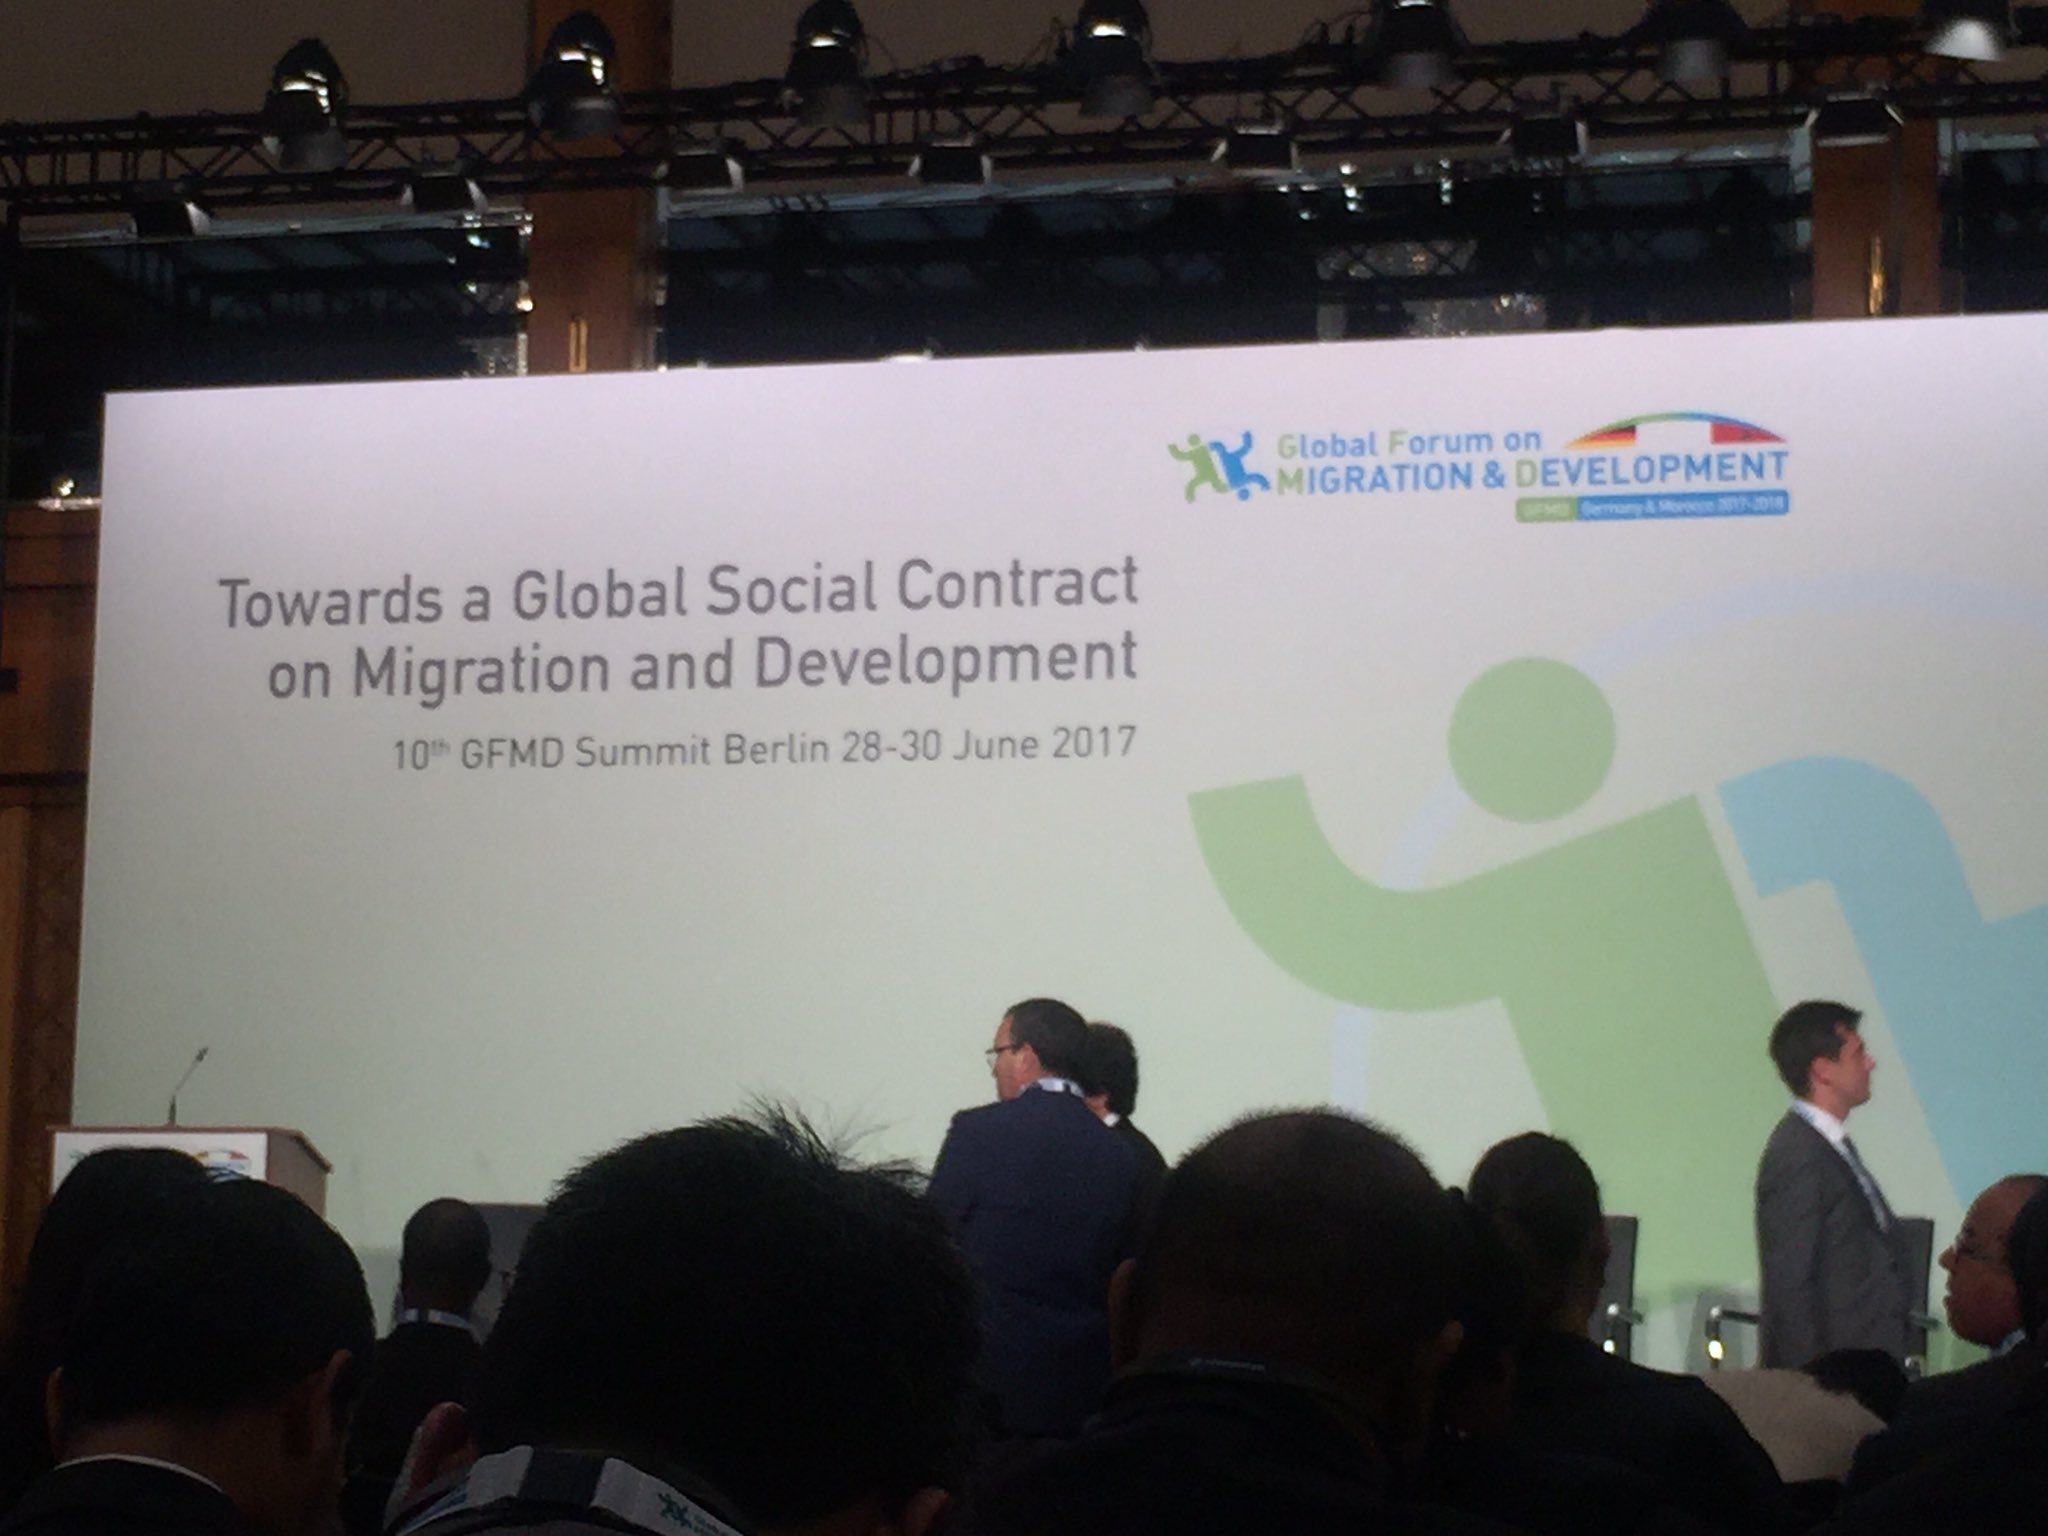 #gfmd10 #gfmd2017 in #berlin about to start! https://t.co/p76MwPw50c